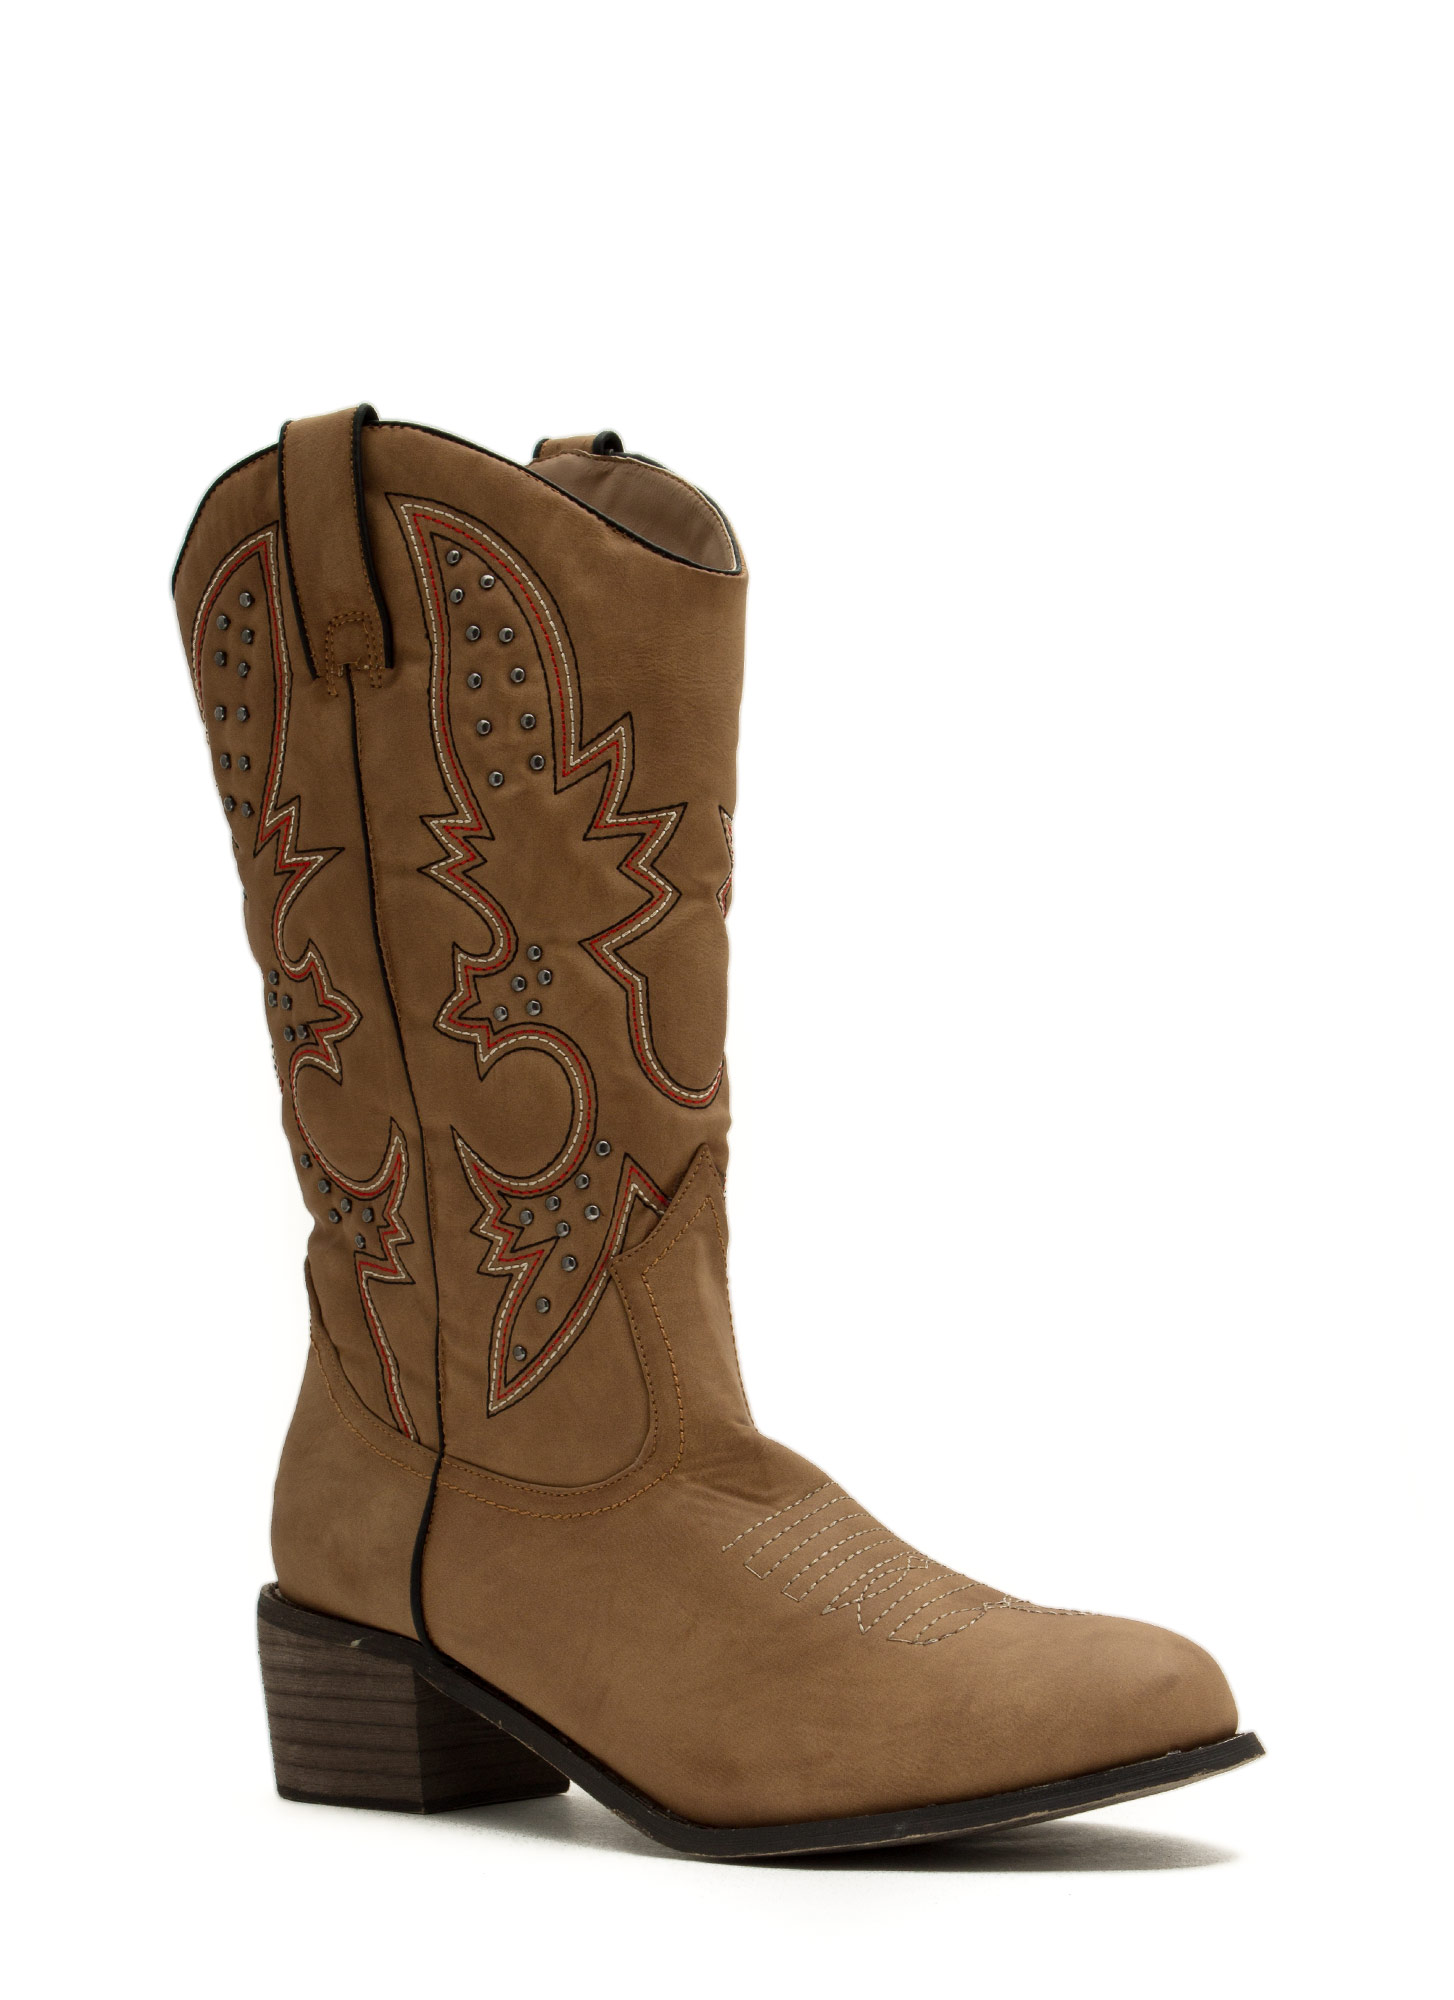 Get Stitches Studded Cowgirl Boots TAN